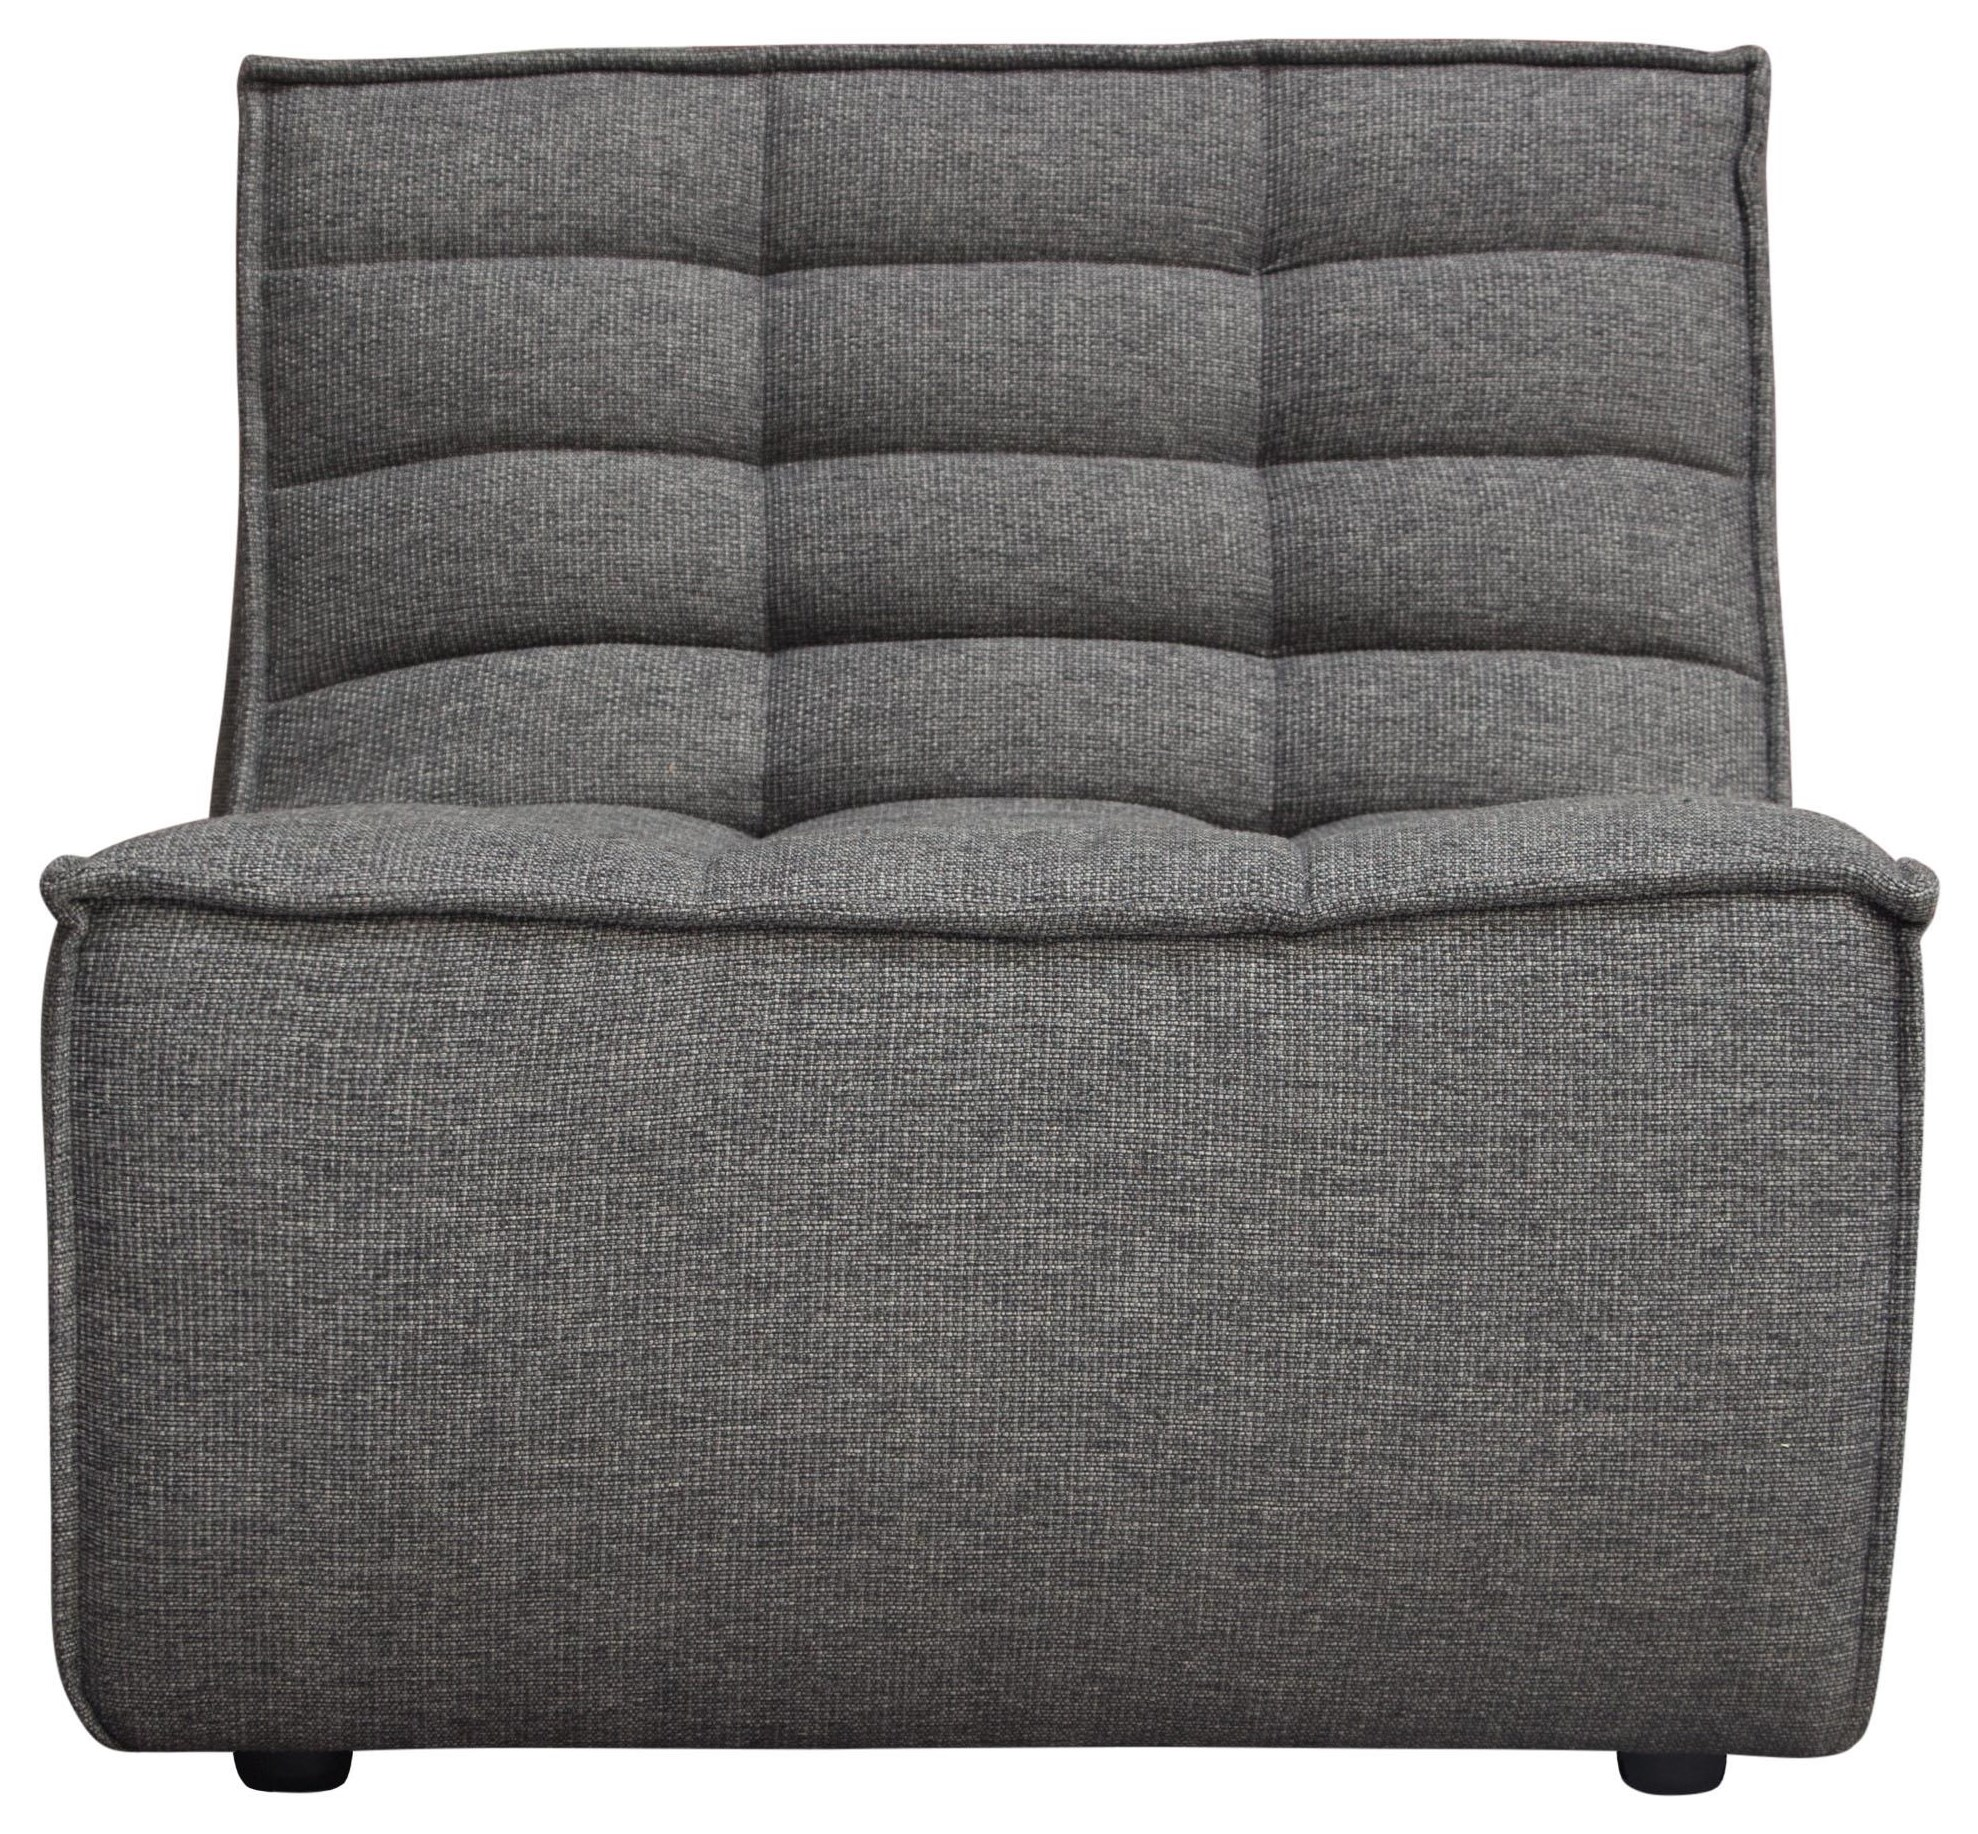 Marshall Chair by Diamond Sofa at Red Knot